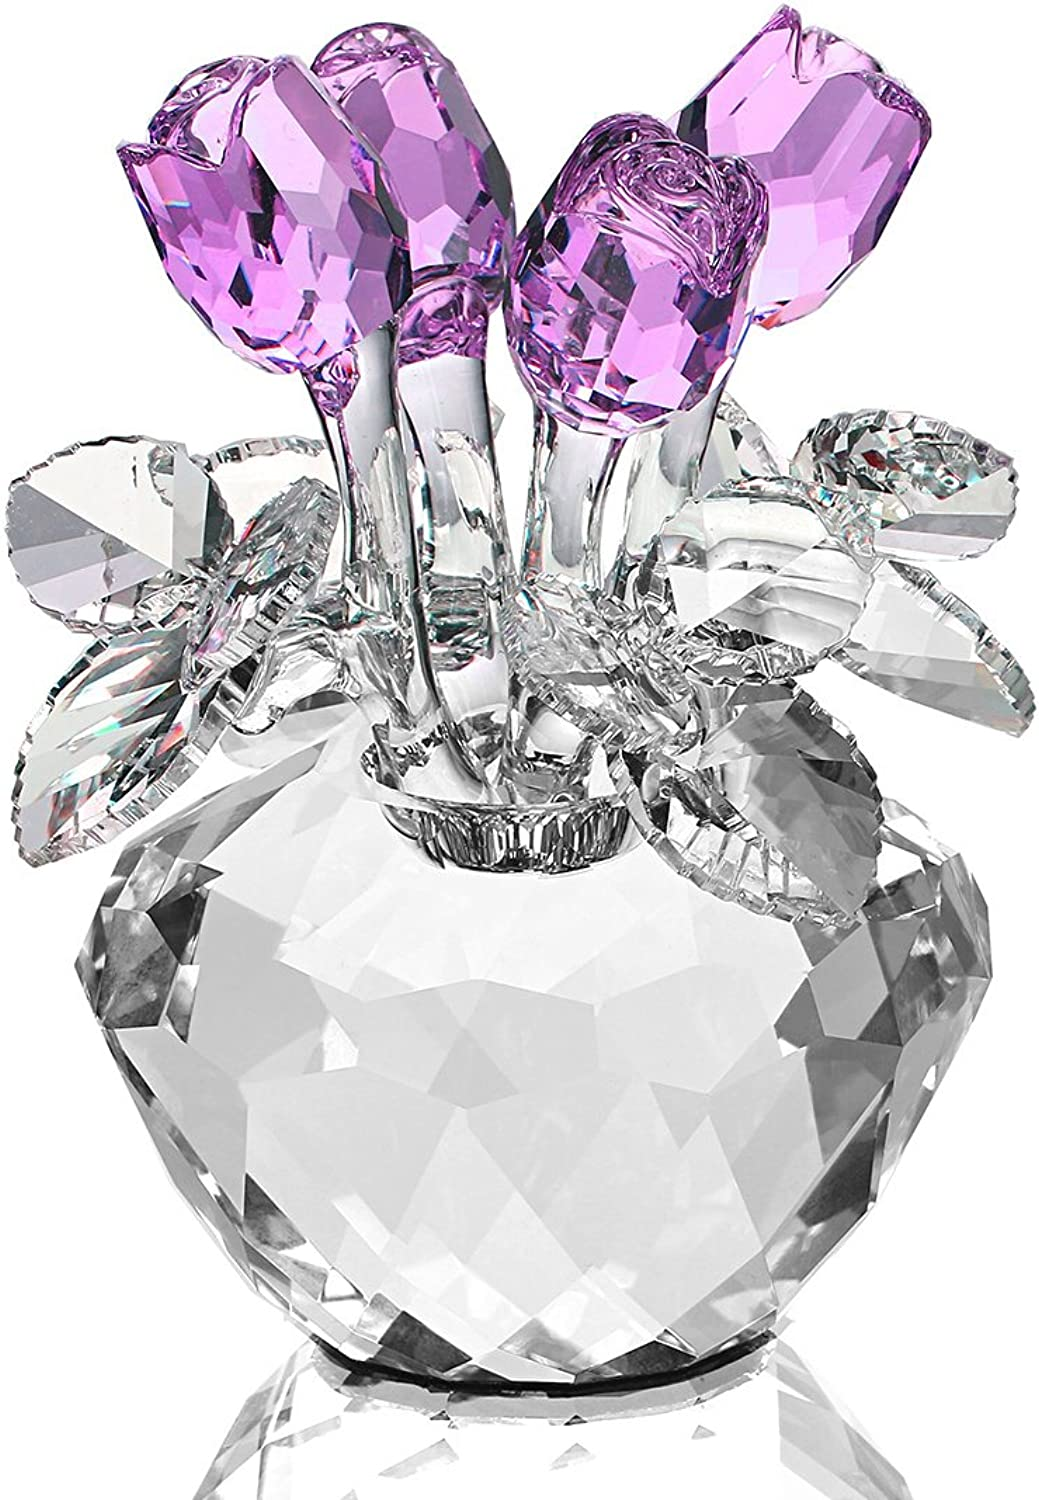 H&D Purple Crystal pink Bouquet Flowers Figurines Ornament with Gift Box